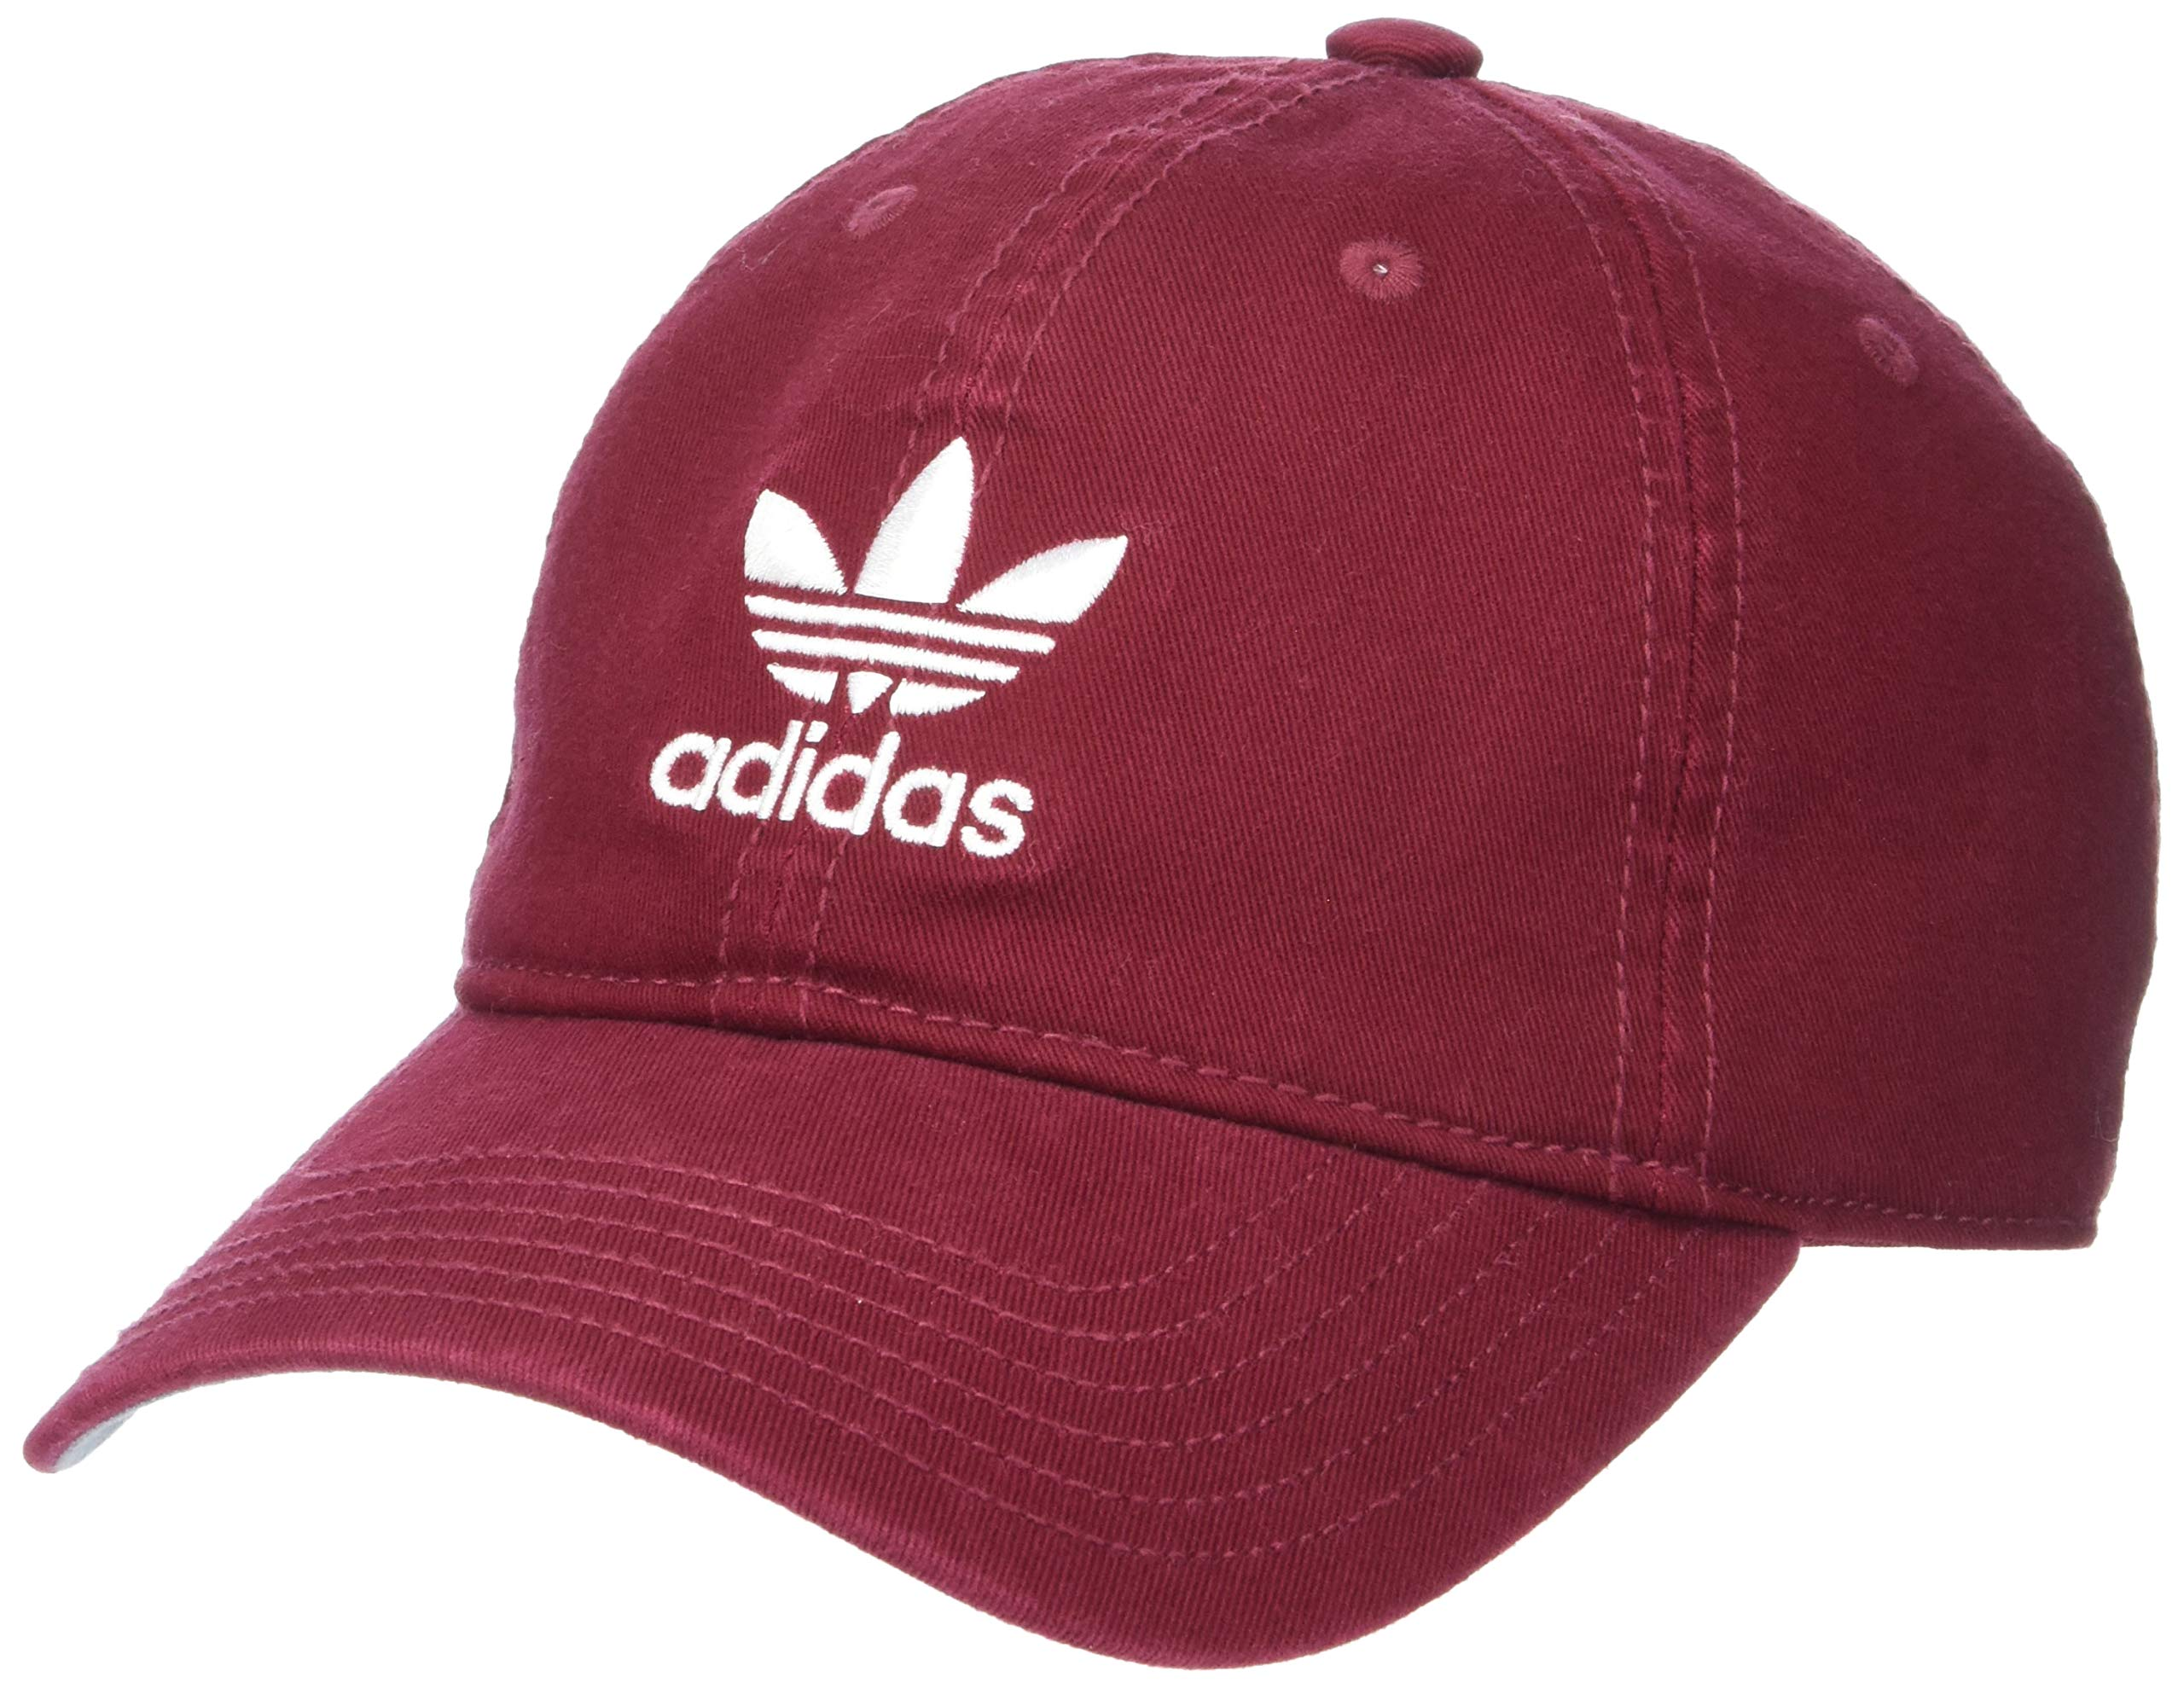 adidas Originals Women's Relaxed Adjustable Strapback Cap, Collegiate Burgundy/White, ONE SIZE by adidas